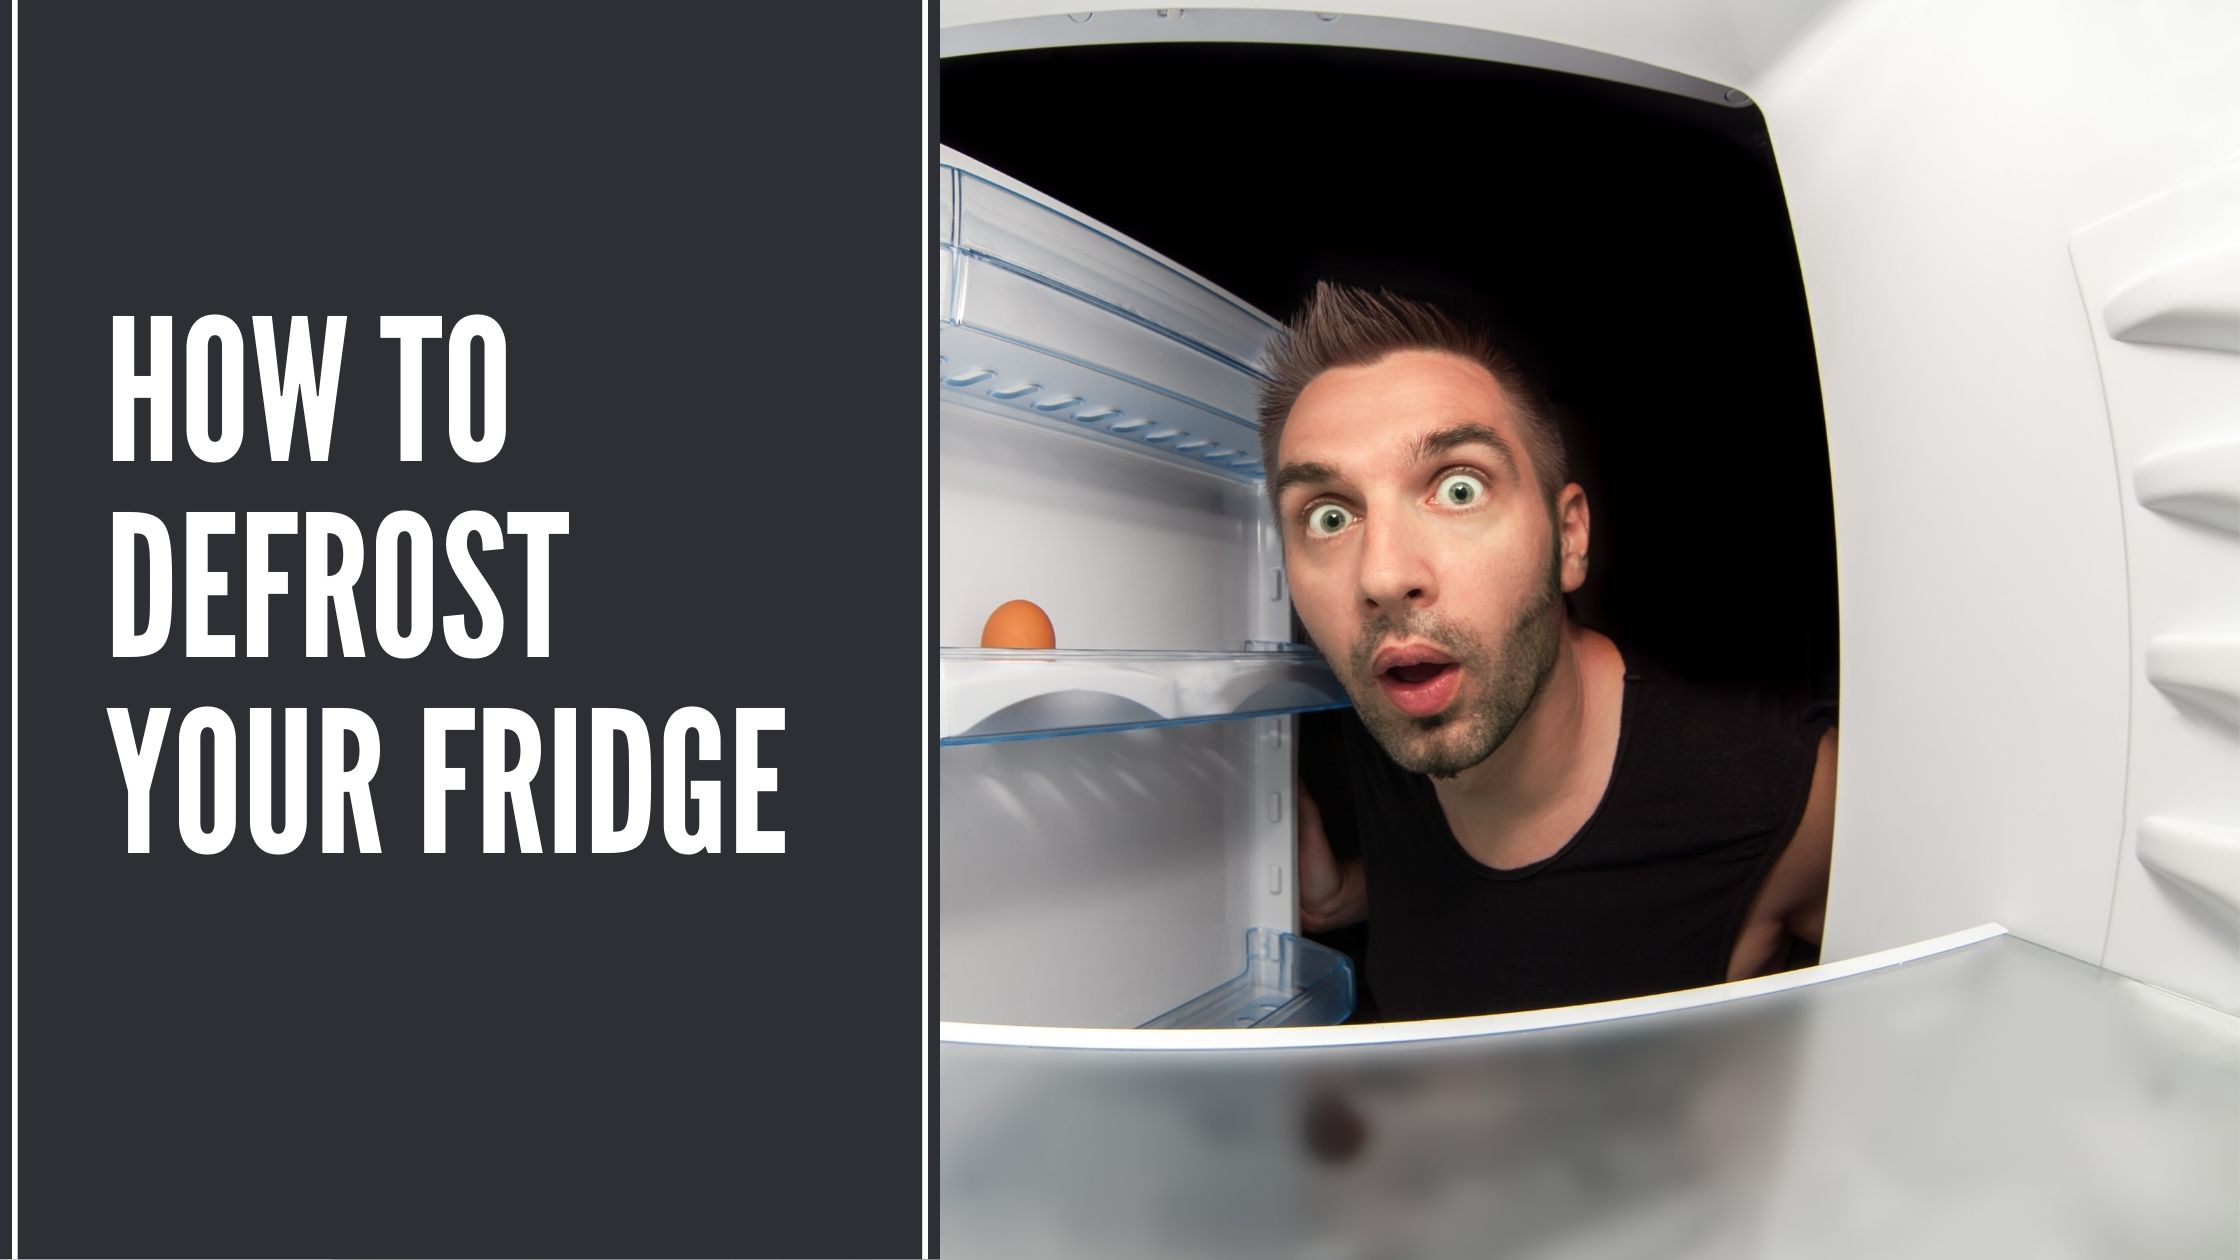 How To Defrost Your Fridge